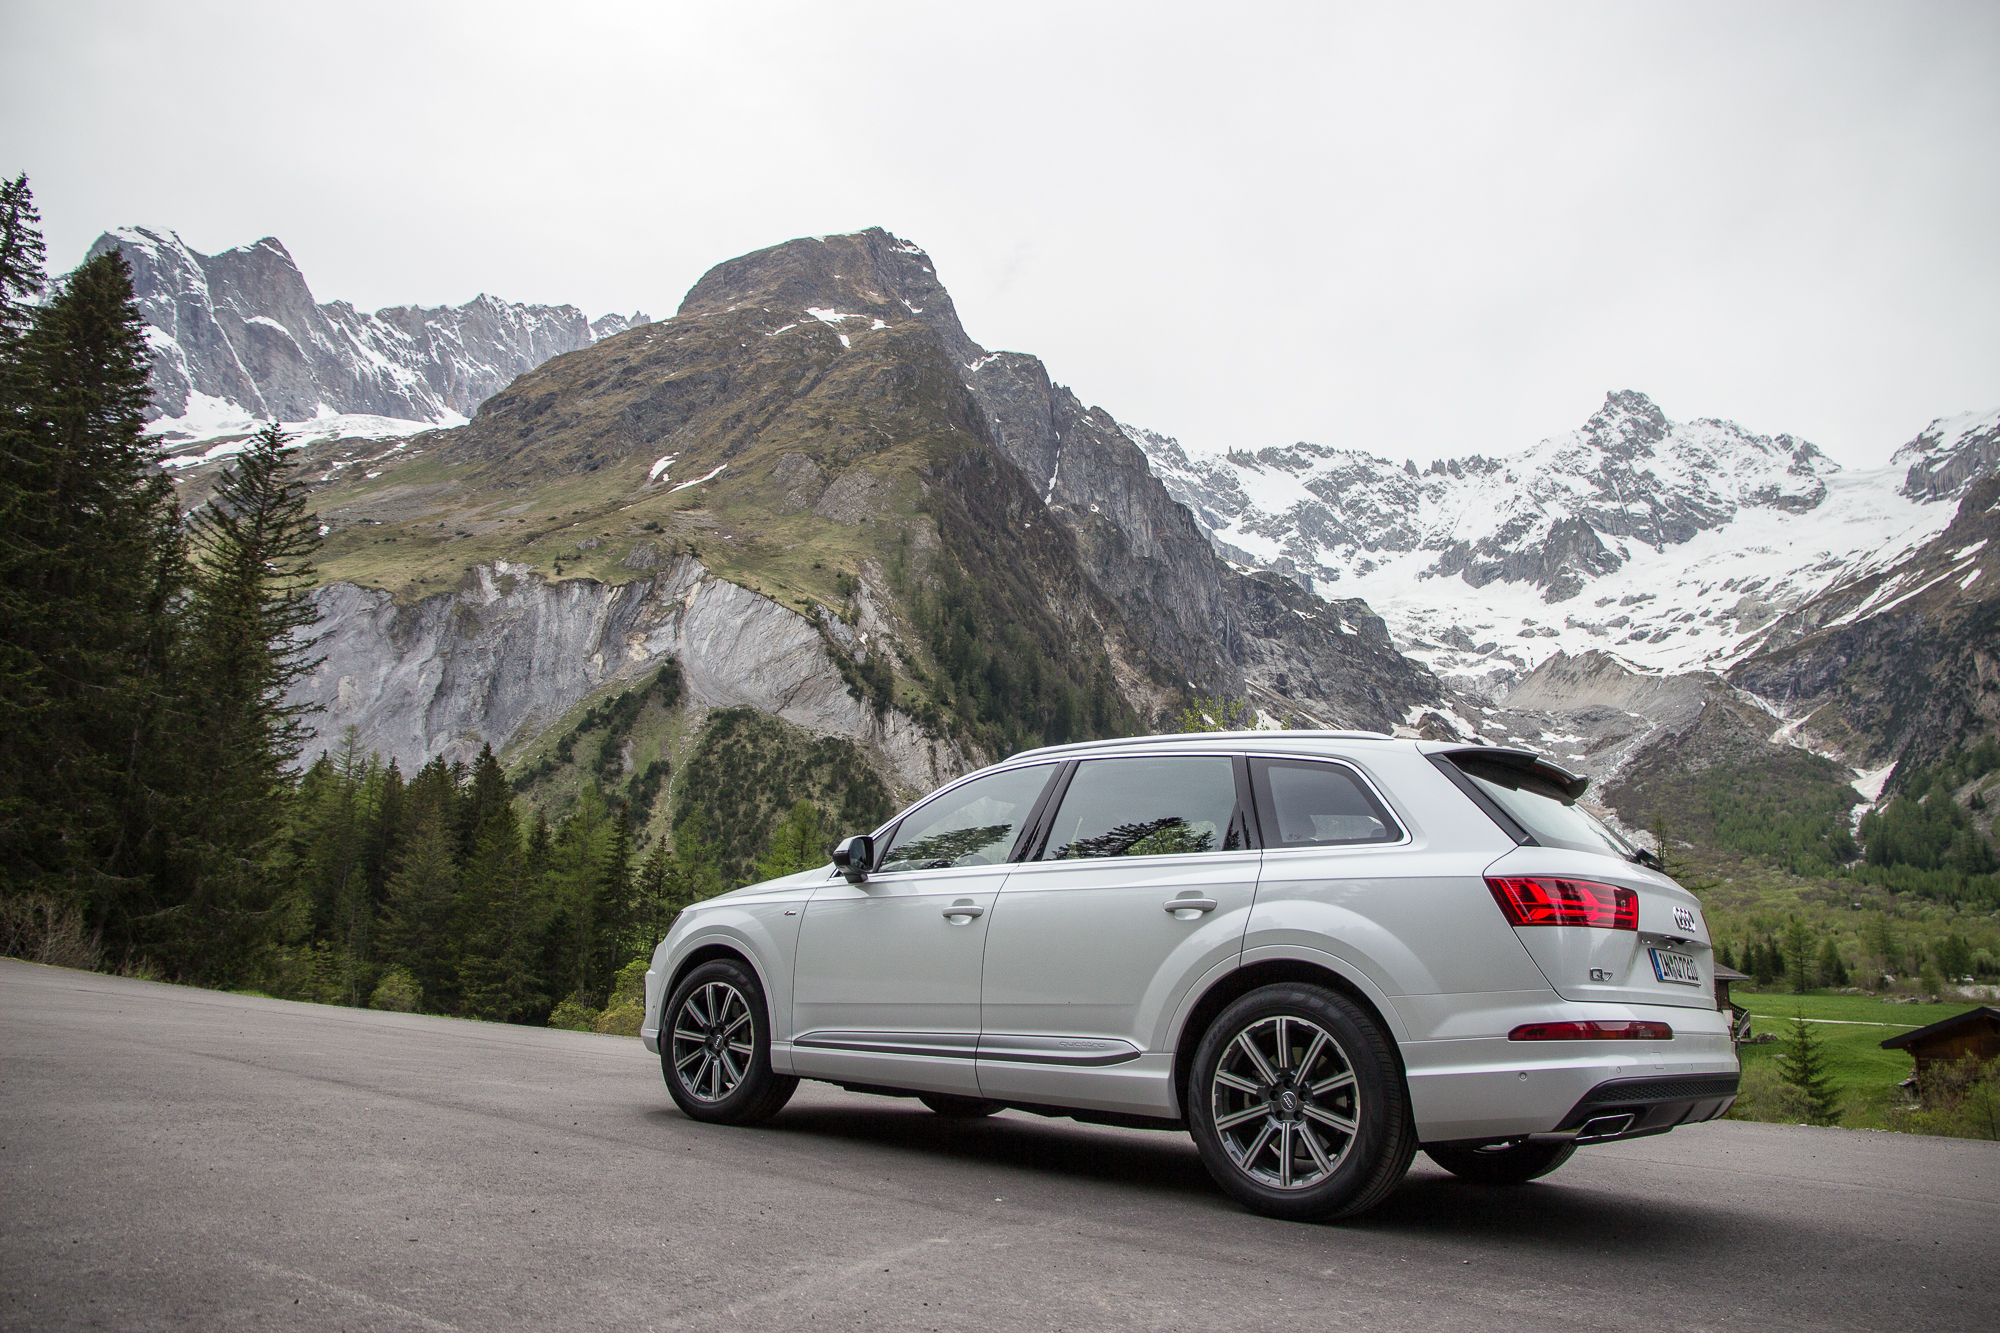 2017 Audi Q7 Safety Review and Crash Test Ratings - The Car Connection